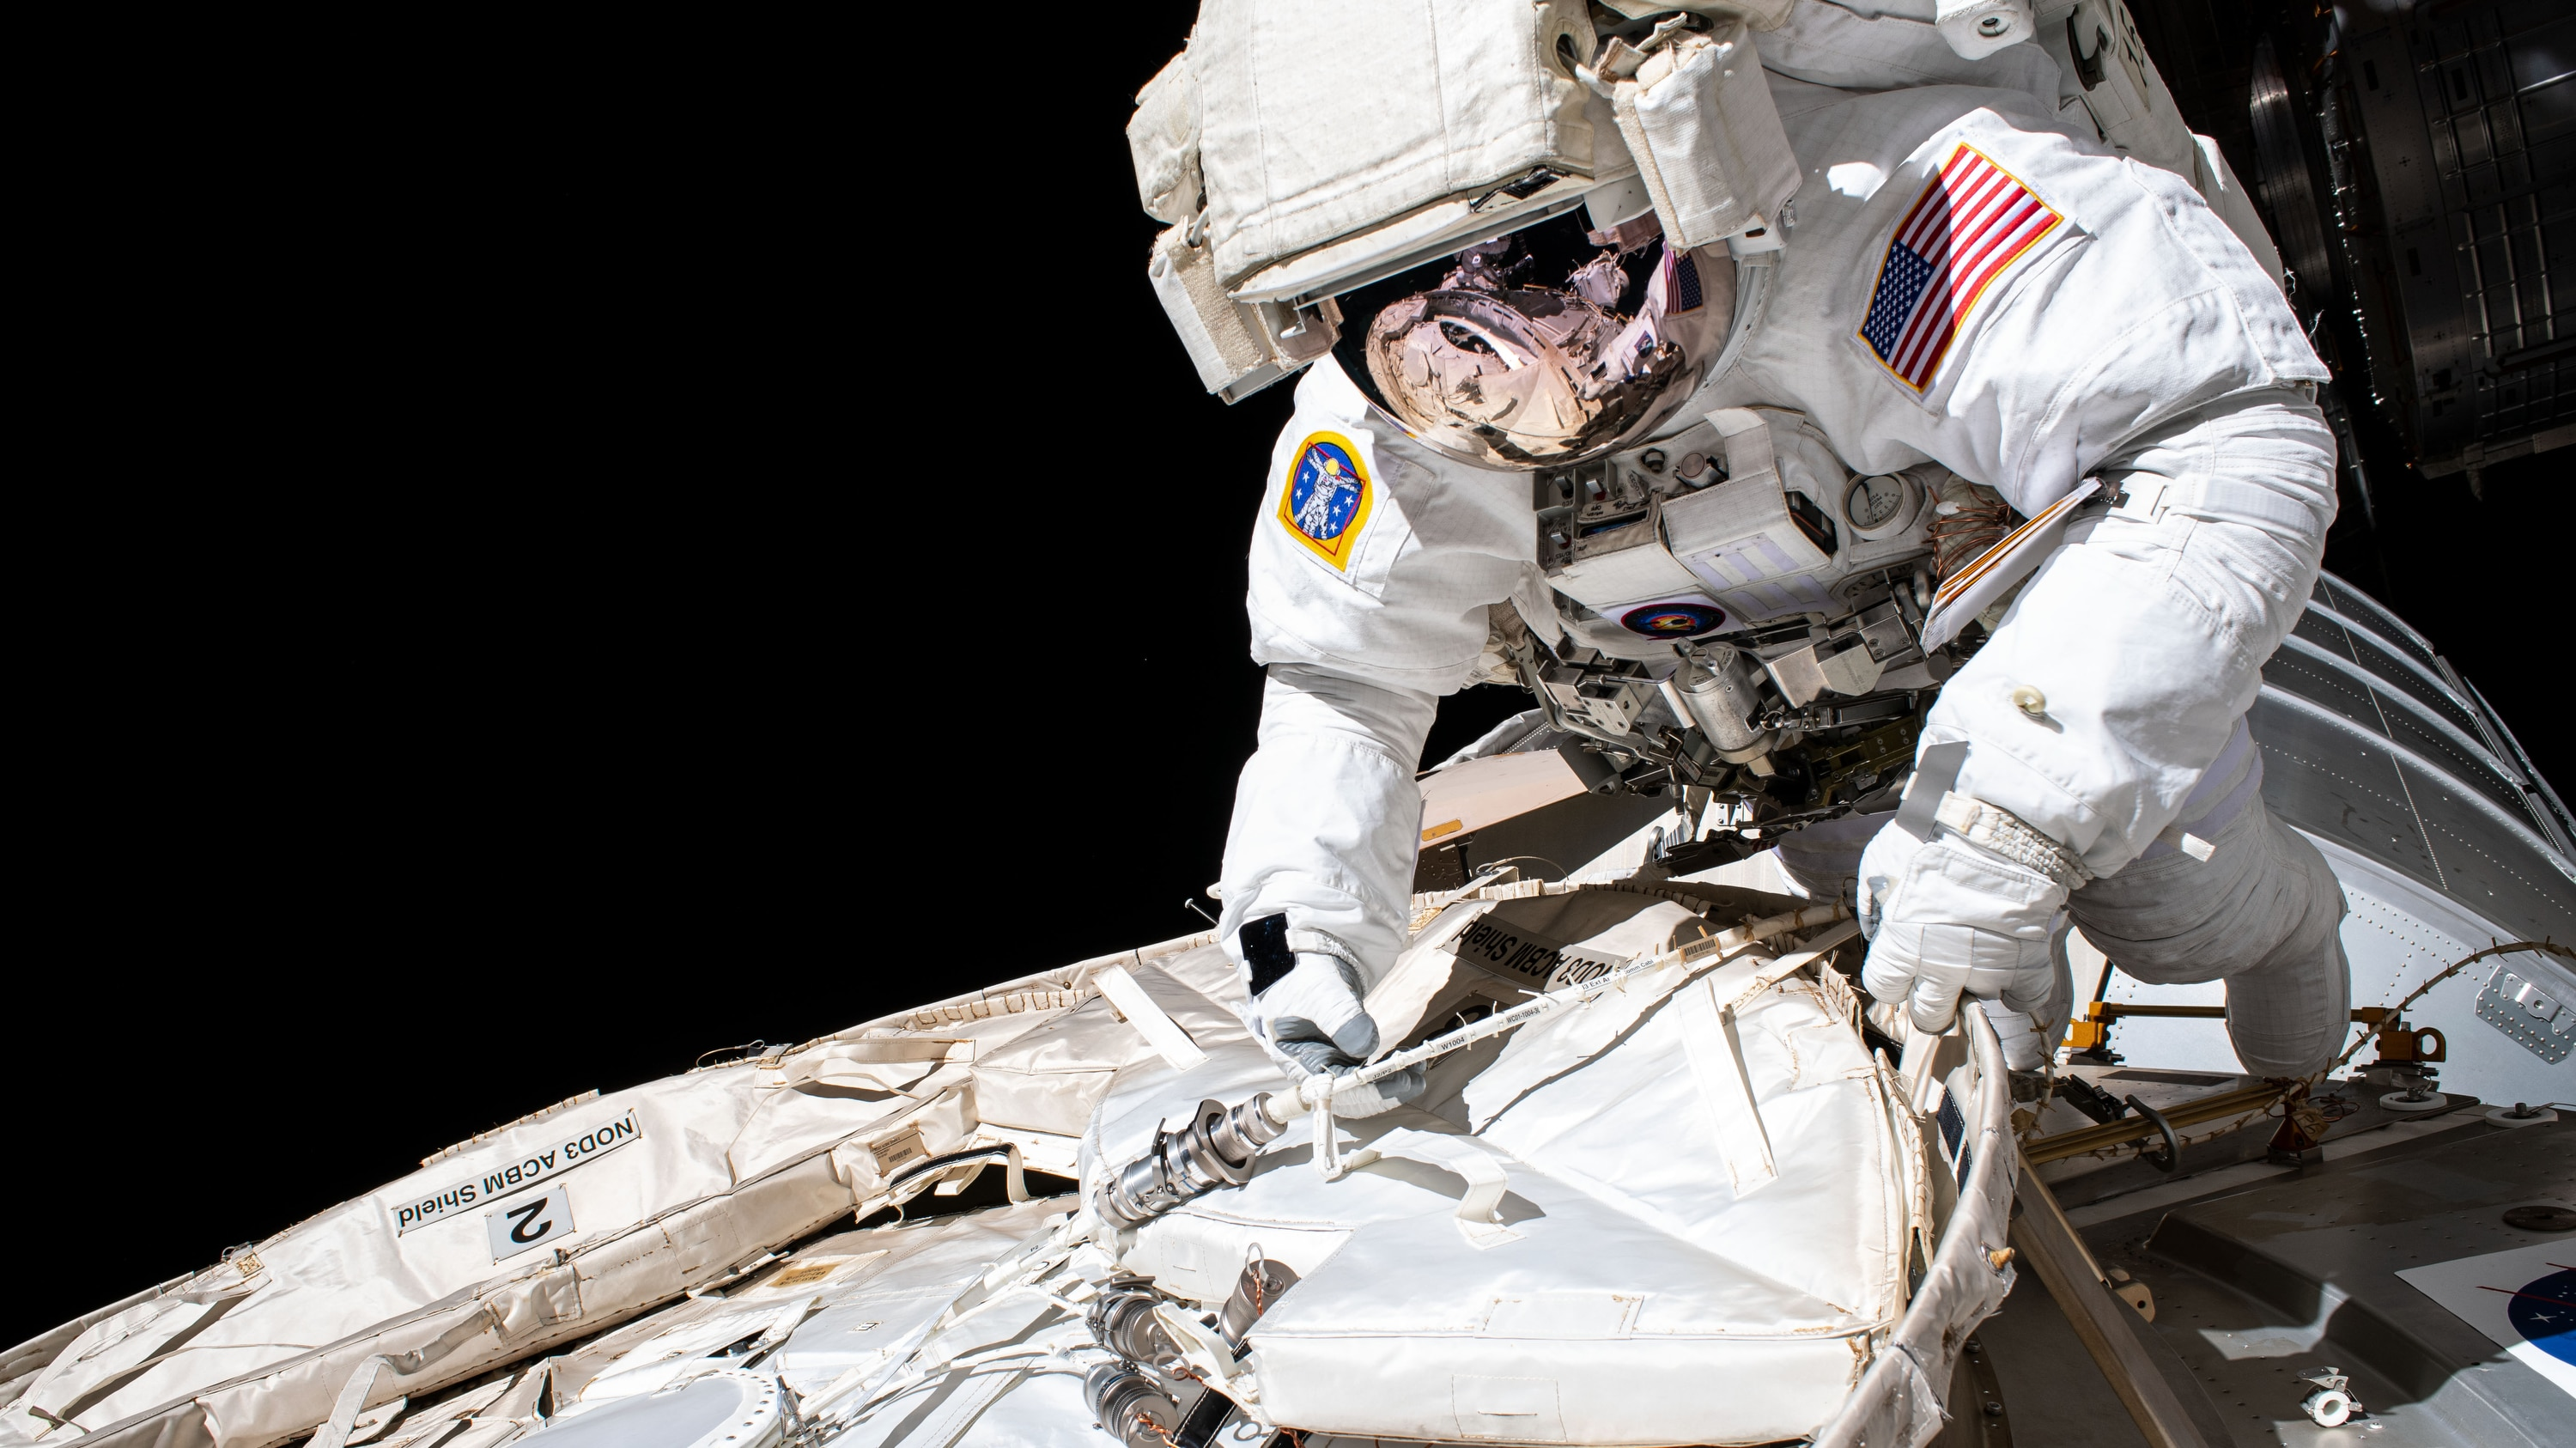 AMONG THE STARS - (July 21, 2020) - NASA astronaut and Expedition 63 Commander Chris Cassidy conducts a spacewalk to set up the Tranquility module for the future installation of a NanoRacks airlock that will enable public and commercial research on the outside of the International Space Station. Cassidy has completed 10 spacewalks throughout his career for a total of 54 hours and 51 minutes spacewalking time. (NASA) CHRIS CASSIDY